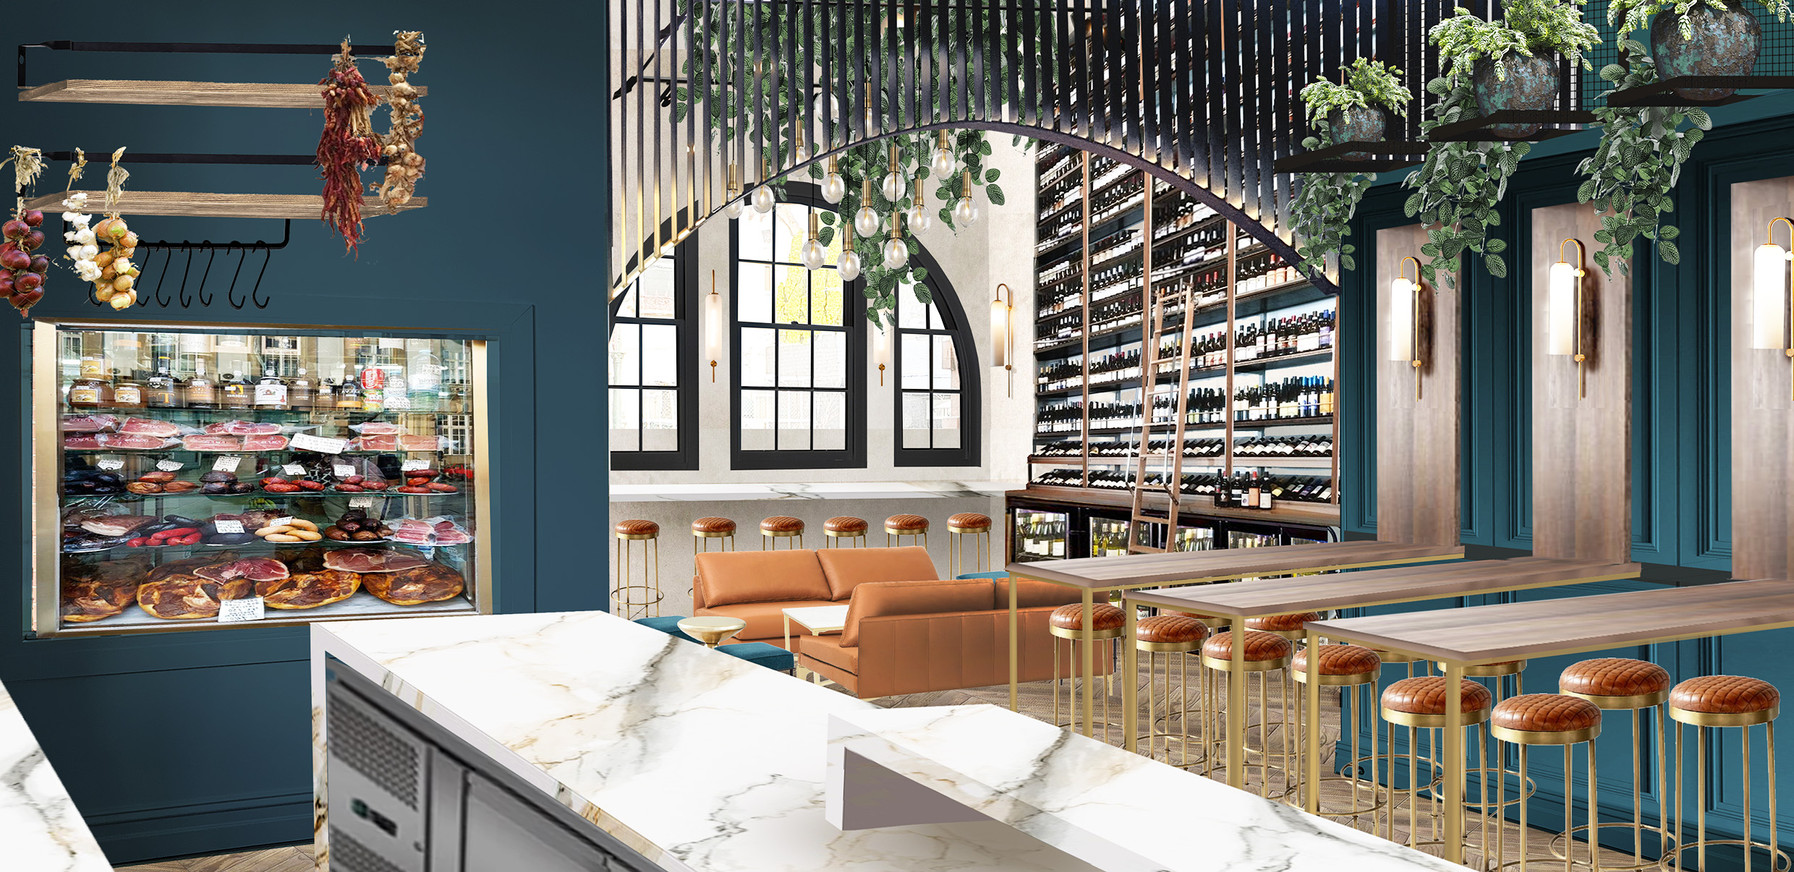 Wine bar interior render - east elevation